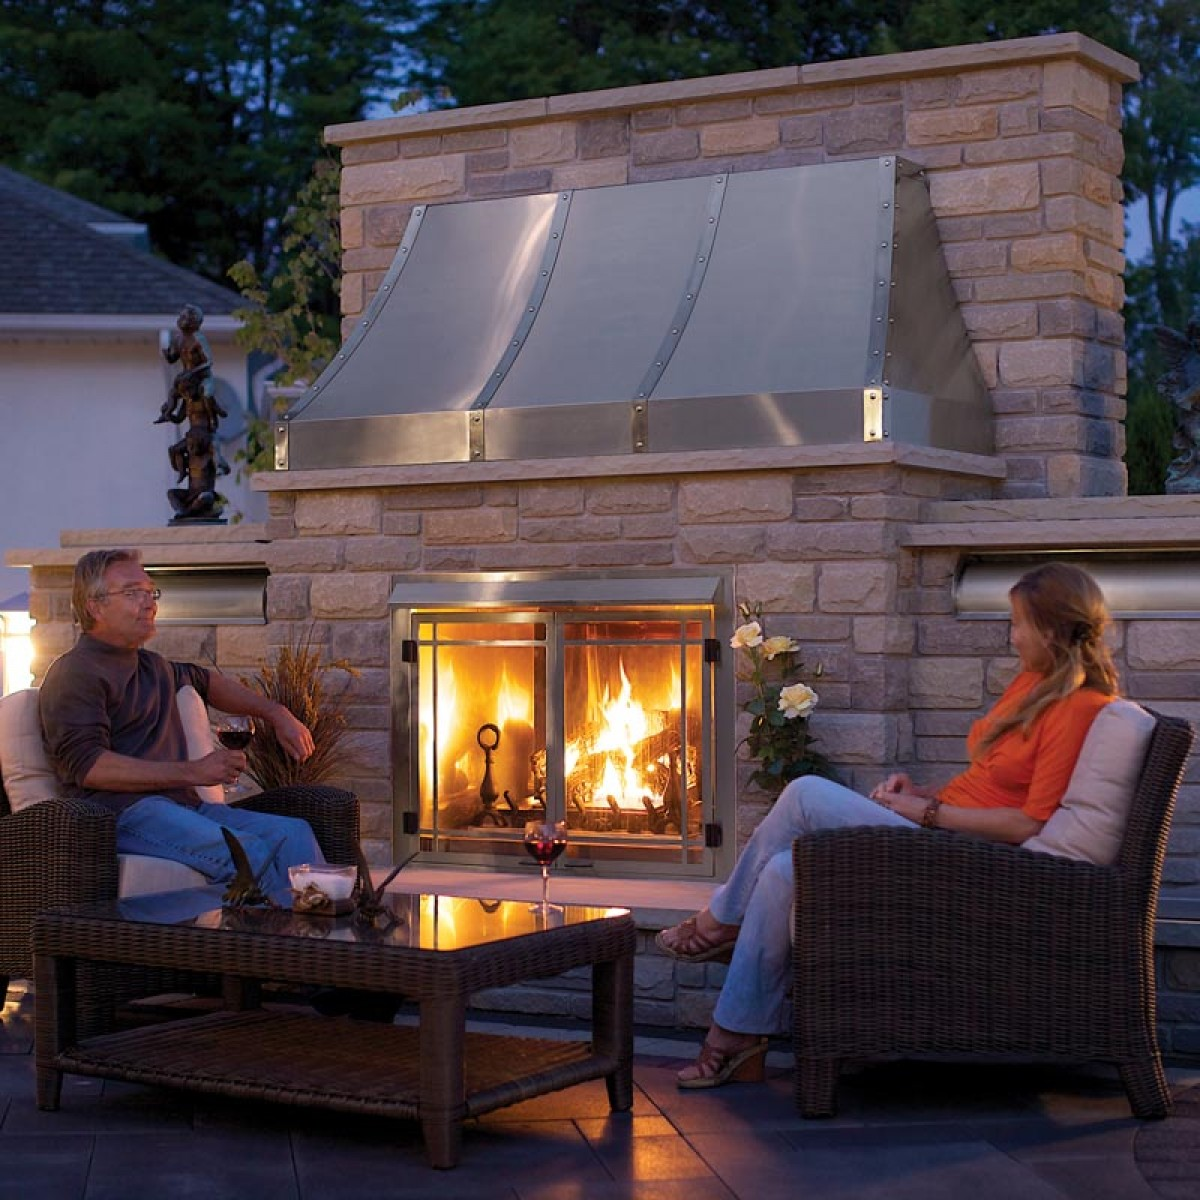 napoleon gss42n outdoor natural gas fireplace at ibuyfireplaces rh ibuyfireplaces com outdoor natural gas fireplaces canada outdoor natural gas fireplace inserts